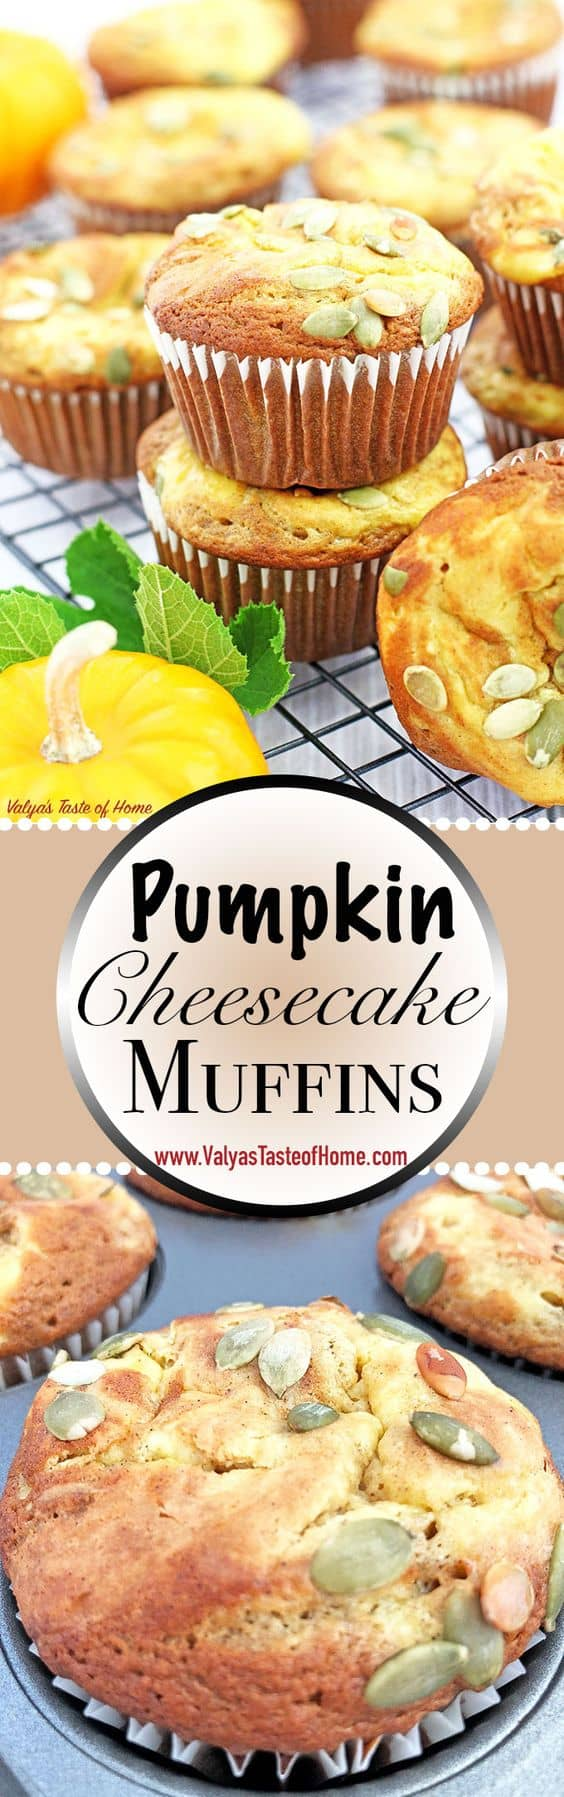 cinnamon, clean eating, fall baking, home eggs, homemade pumpkin puree, kid friendly, organic flour, organic sugar, pumpkin cheesecake muffins, Pumpkin Cheesecake Muffins (Video), pumpkin muffins, pumpkin pie spice, video ricipe